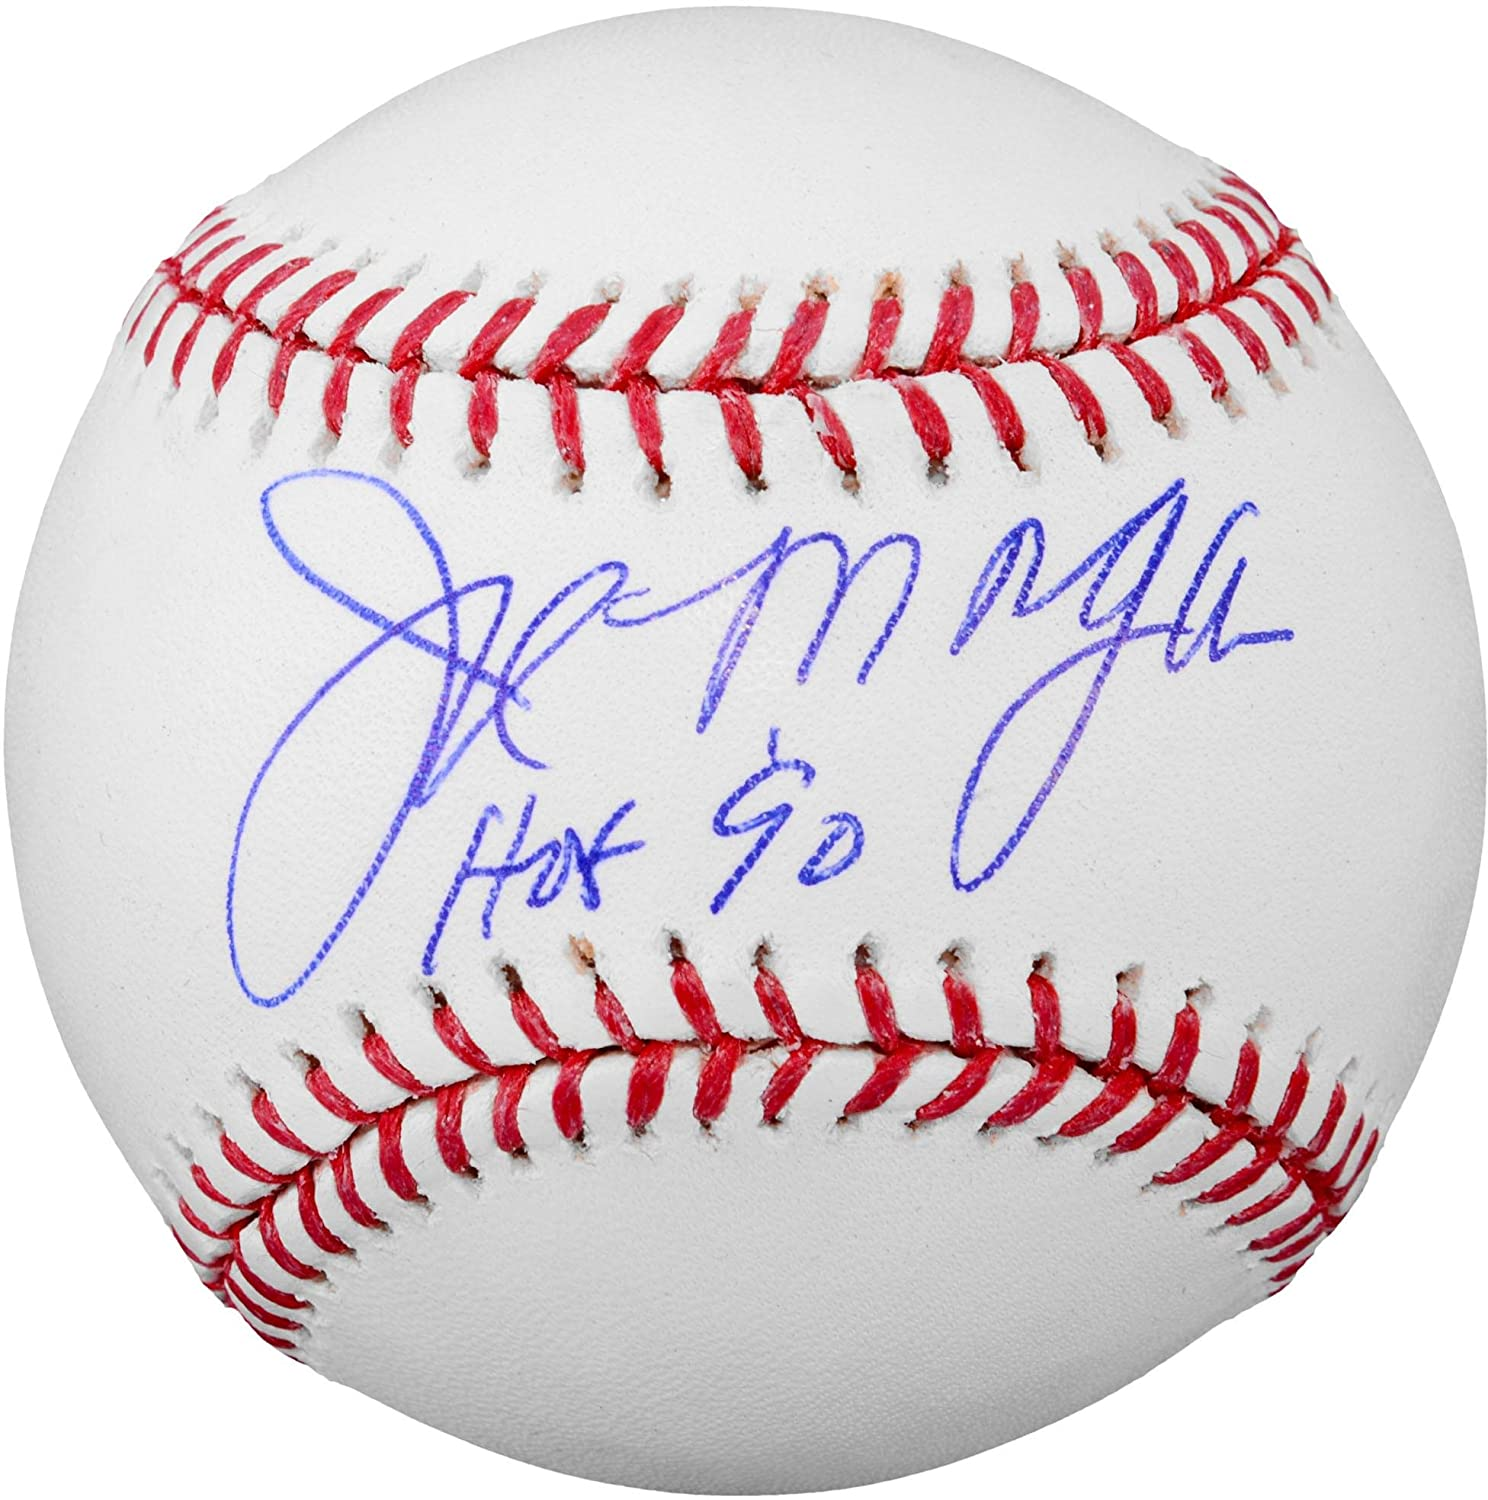 Joe Morgan Cincinnati Reds Autographed Baseball with'HOF 90' Inscription - Fanatics Authentic Certified